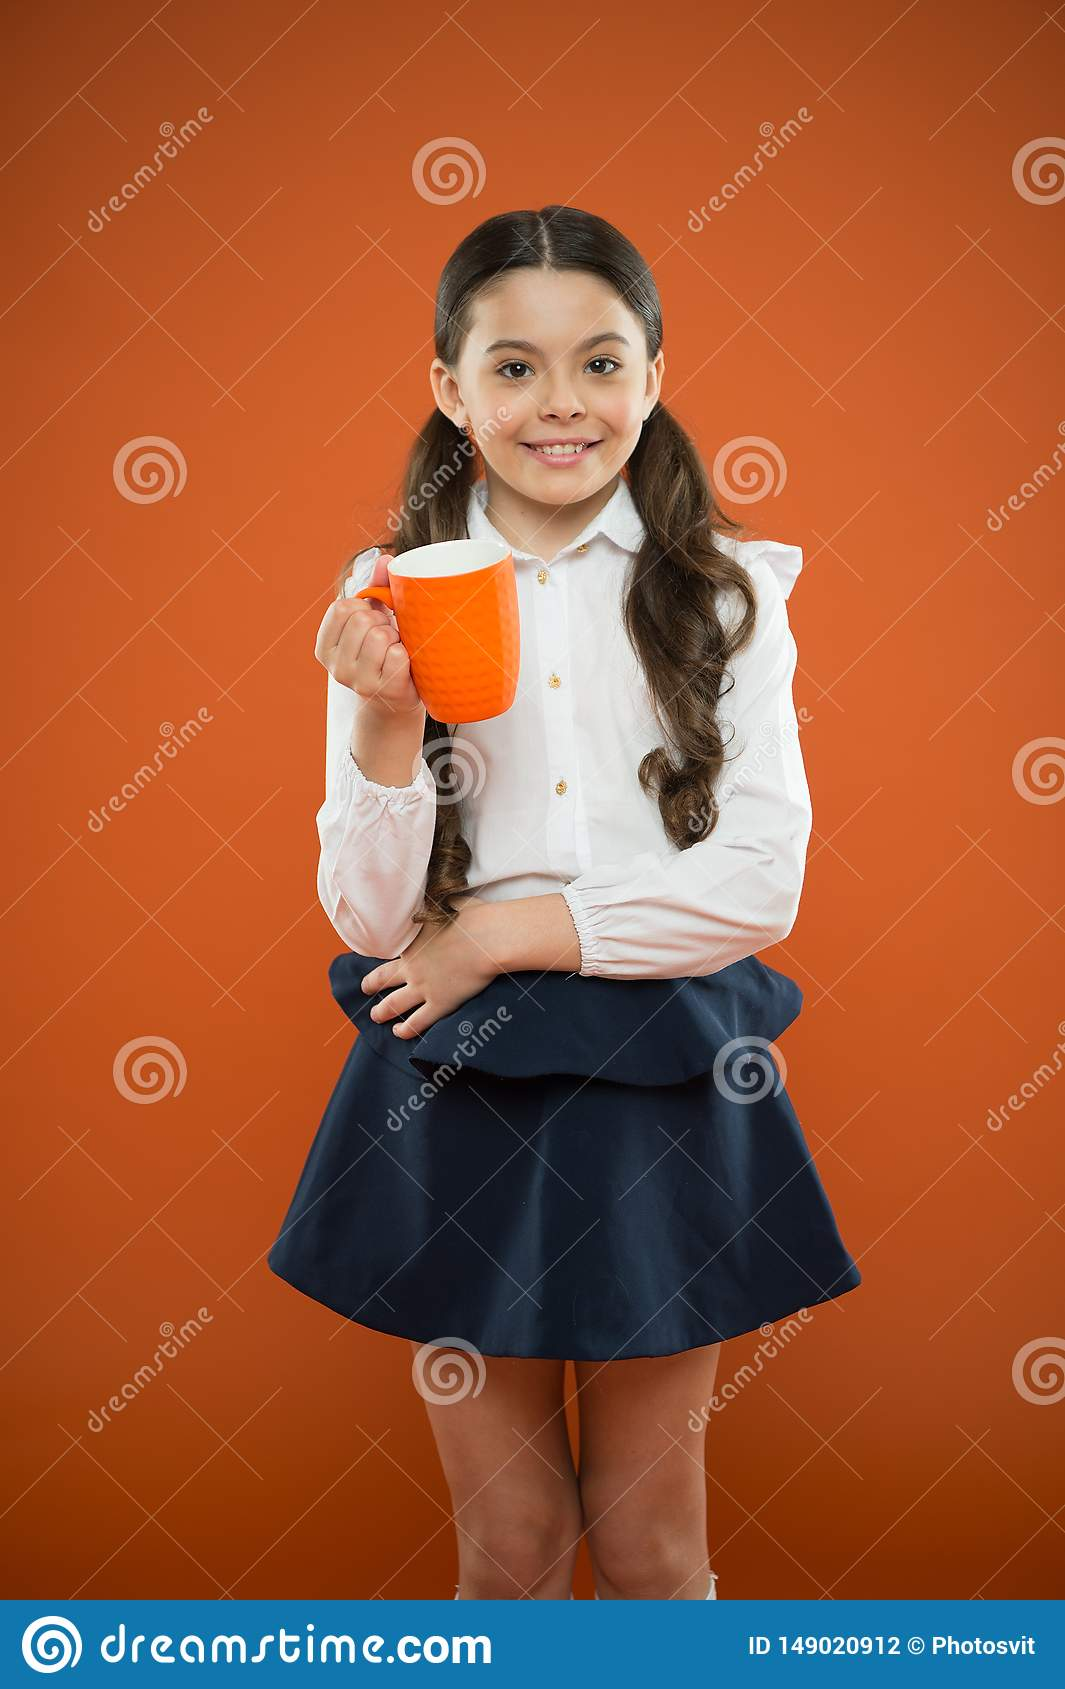 Relax and recharge. Water balance. Enjoying tea before school classes. Drink enough water. Inspiring drink. Girl drink